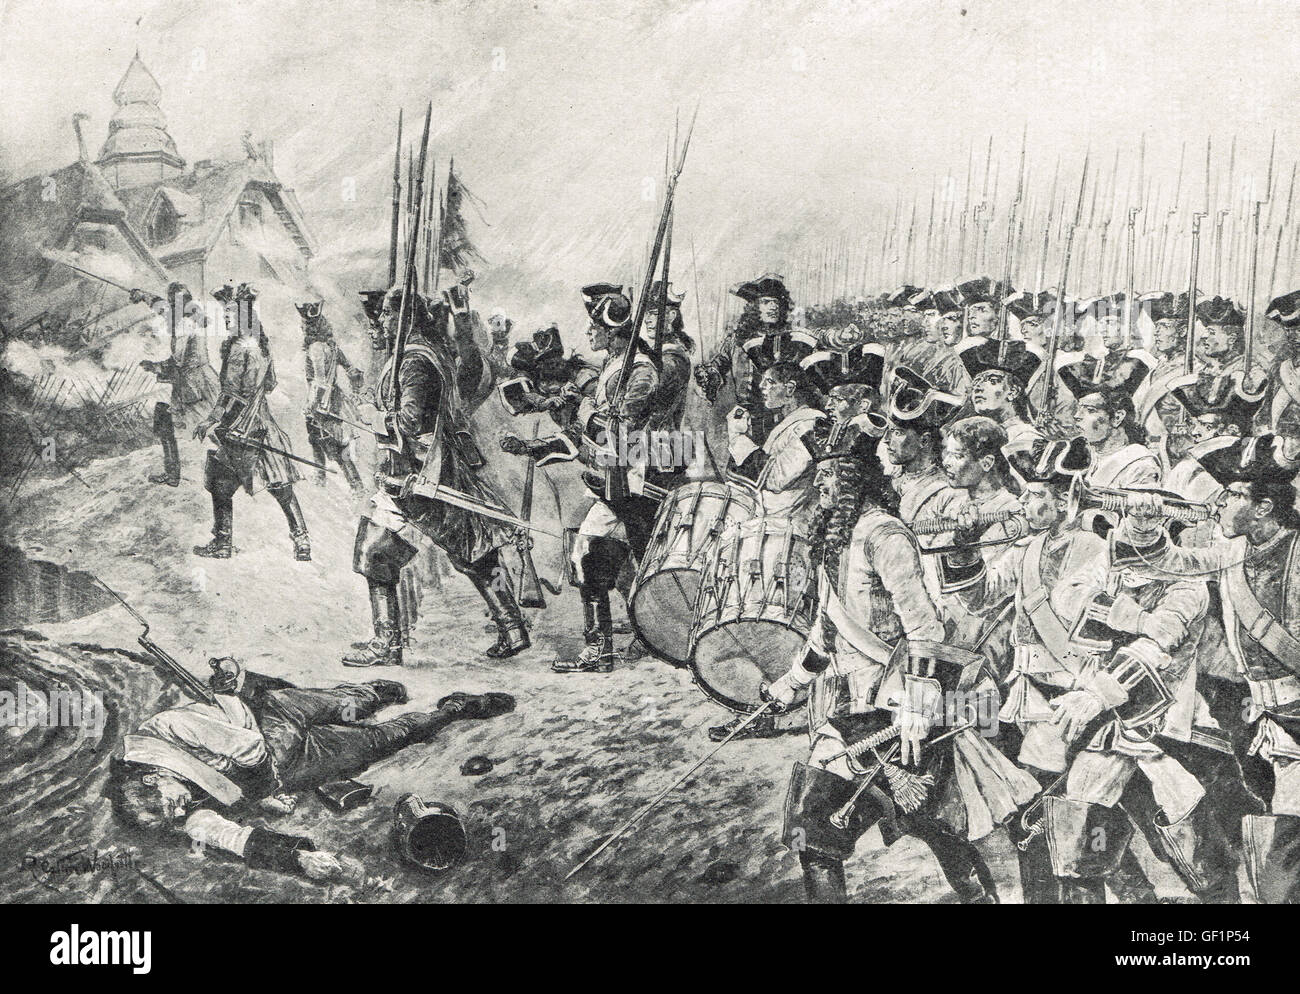 Storming the village, Battle of Blenheim, 1704 - Stock Image